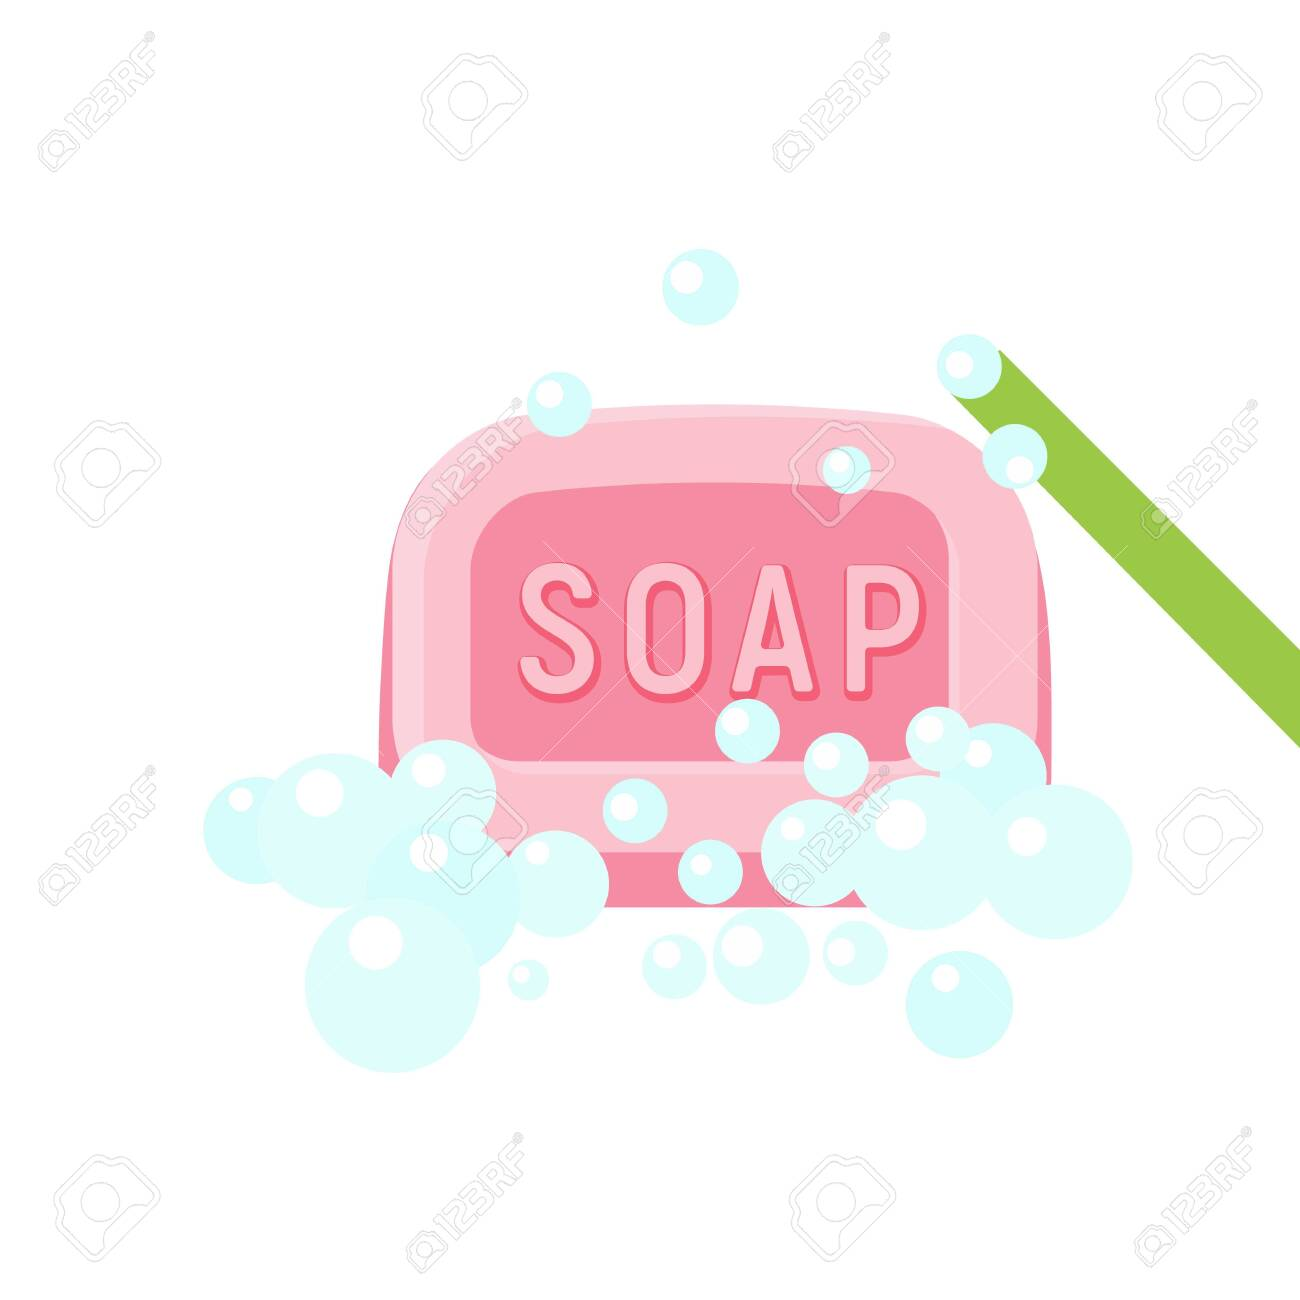 wash soap icon flat illustration of wash soap vector icon for royalty free cliparts vectors and stock illustration image 124444068 wash soap icon flat illustration of wash soap vector icon for